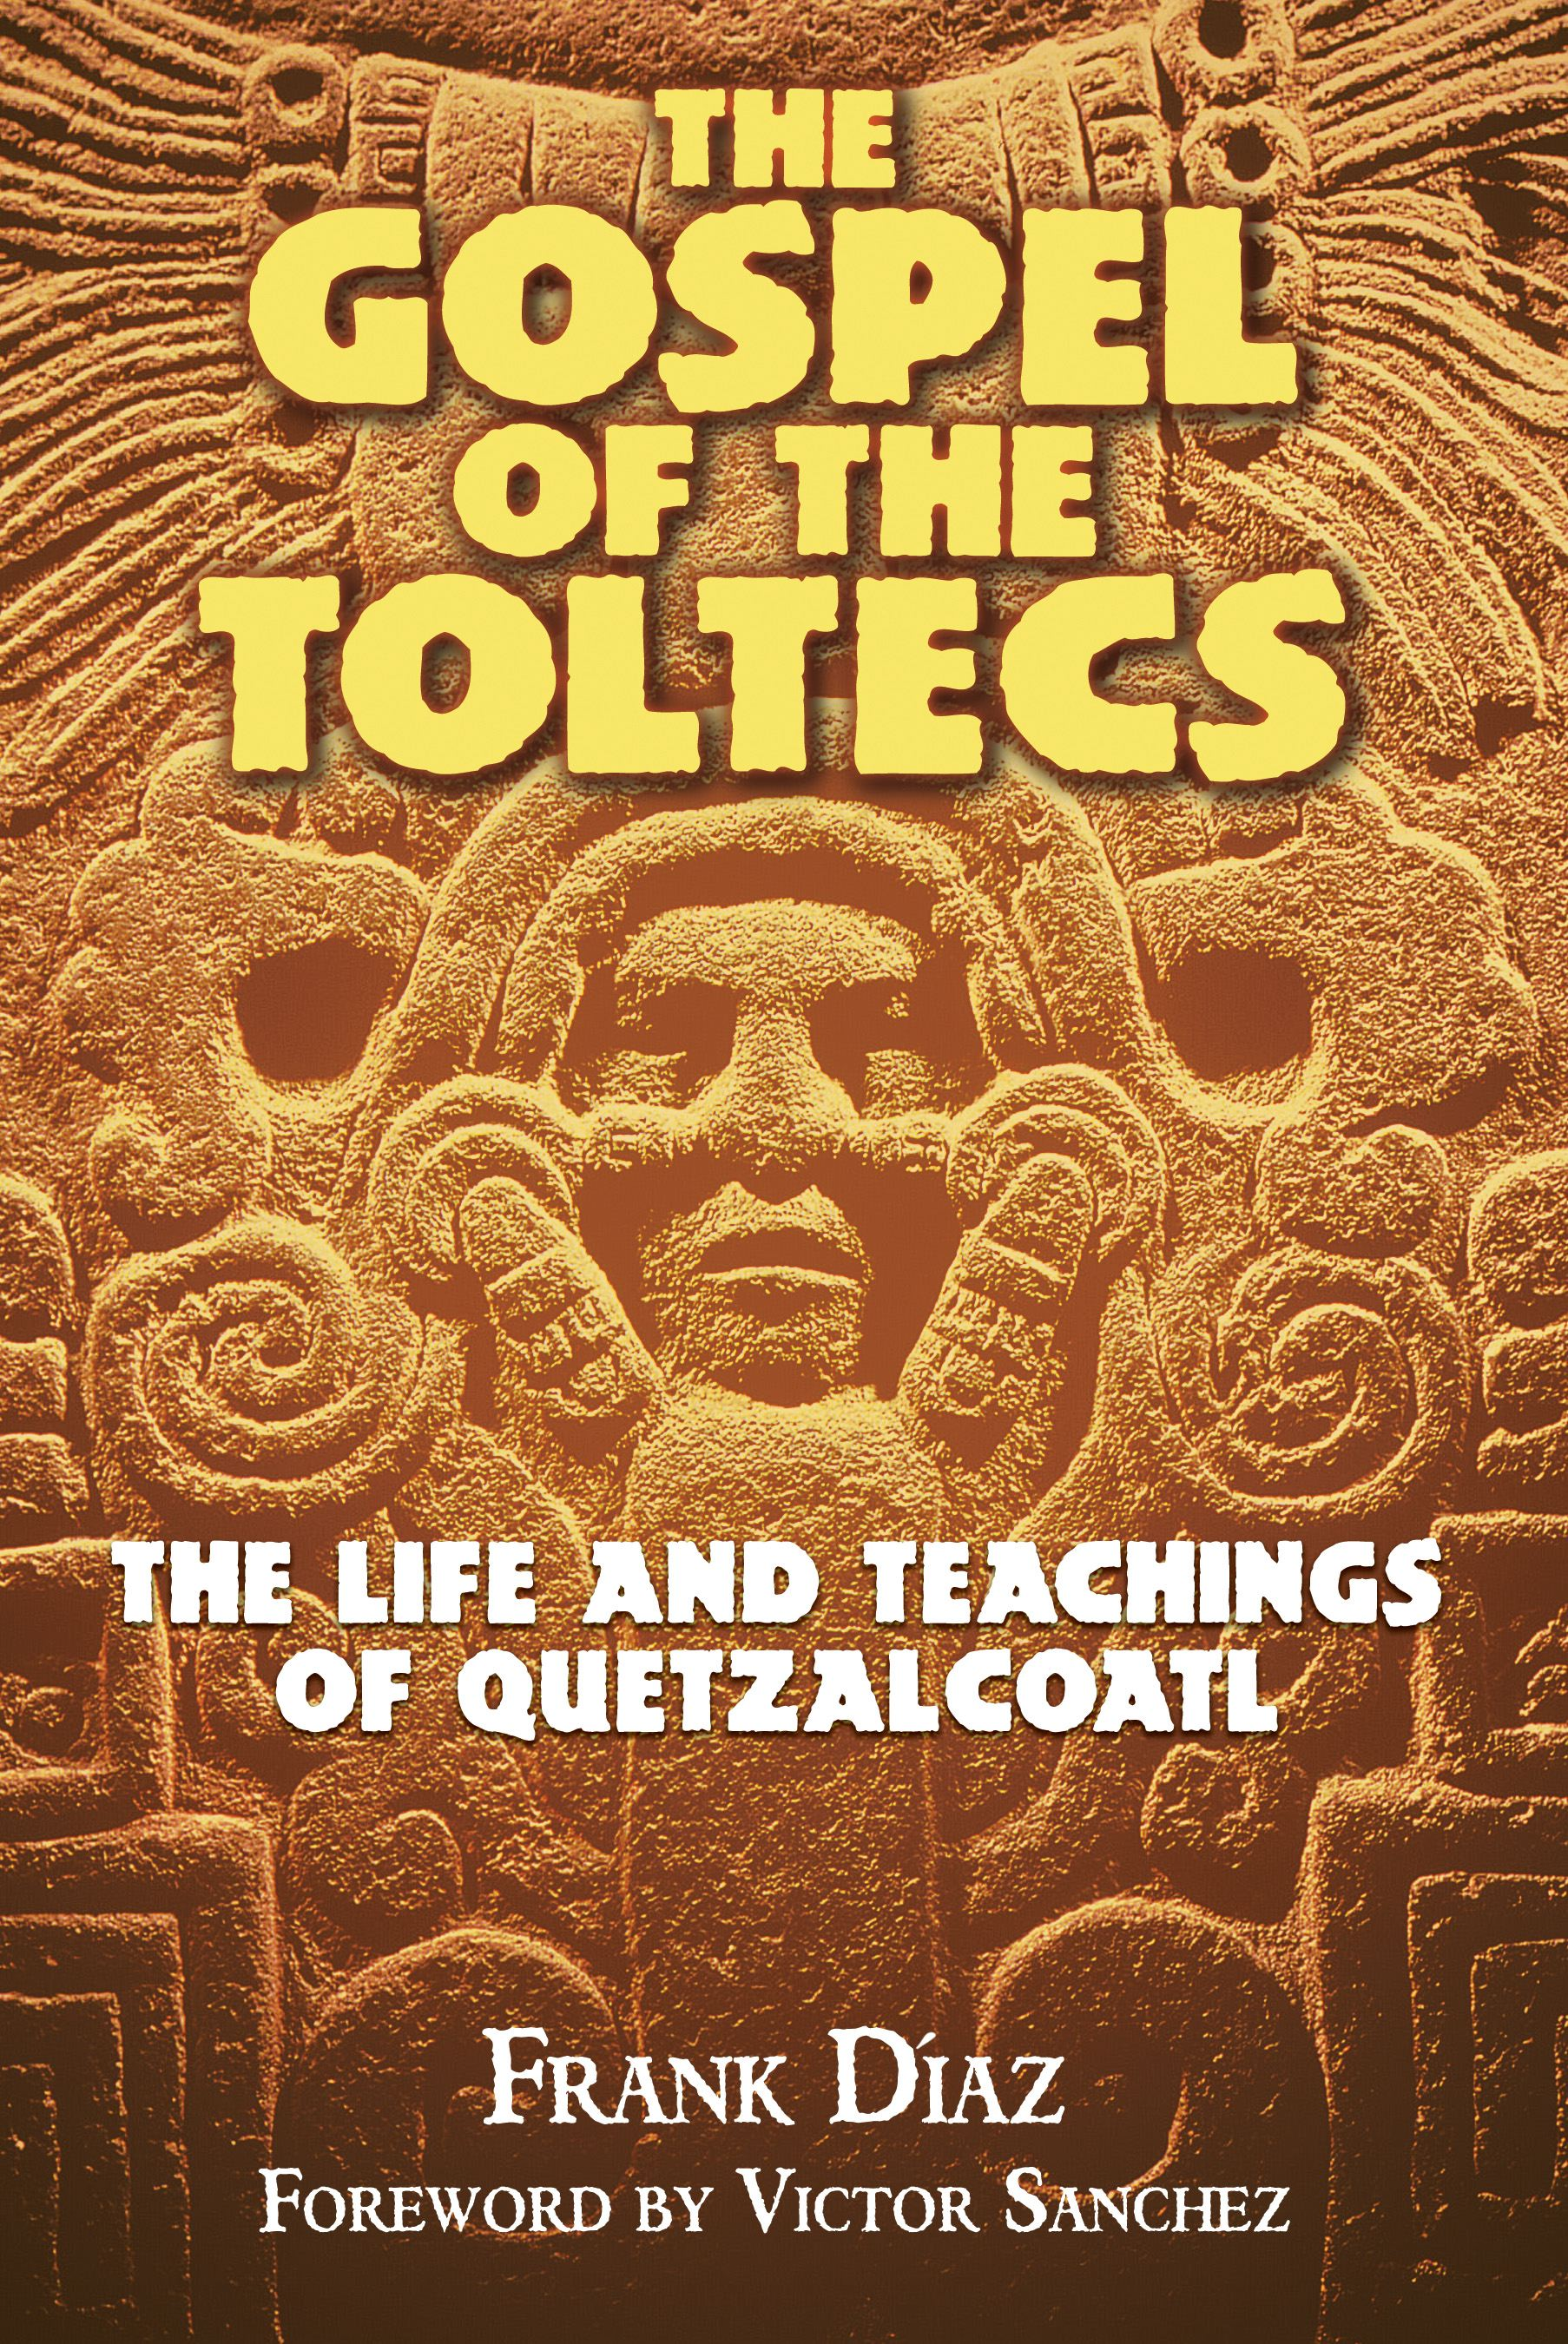 The-gospel-of-the-toltecs-9781879181861_hr